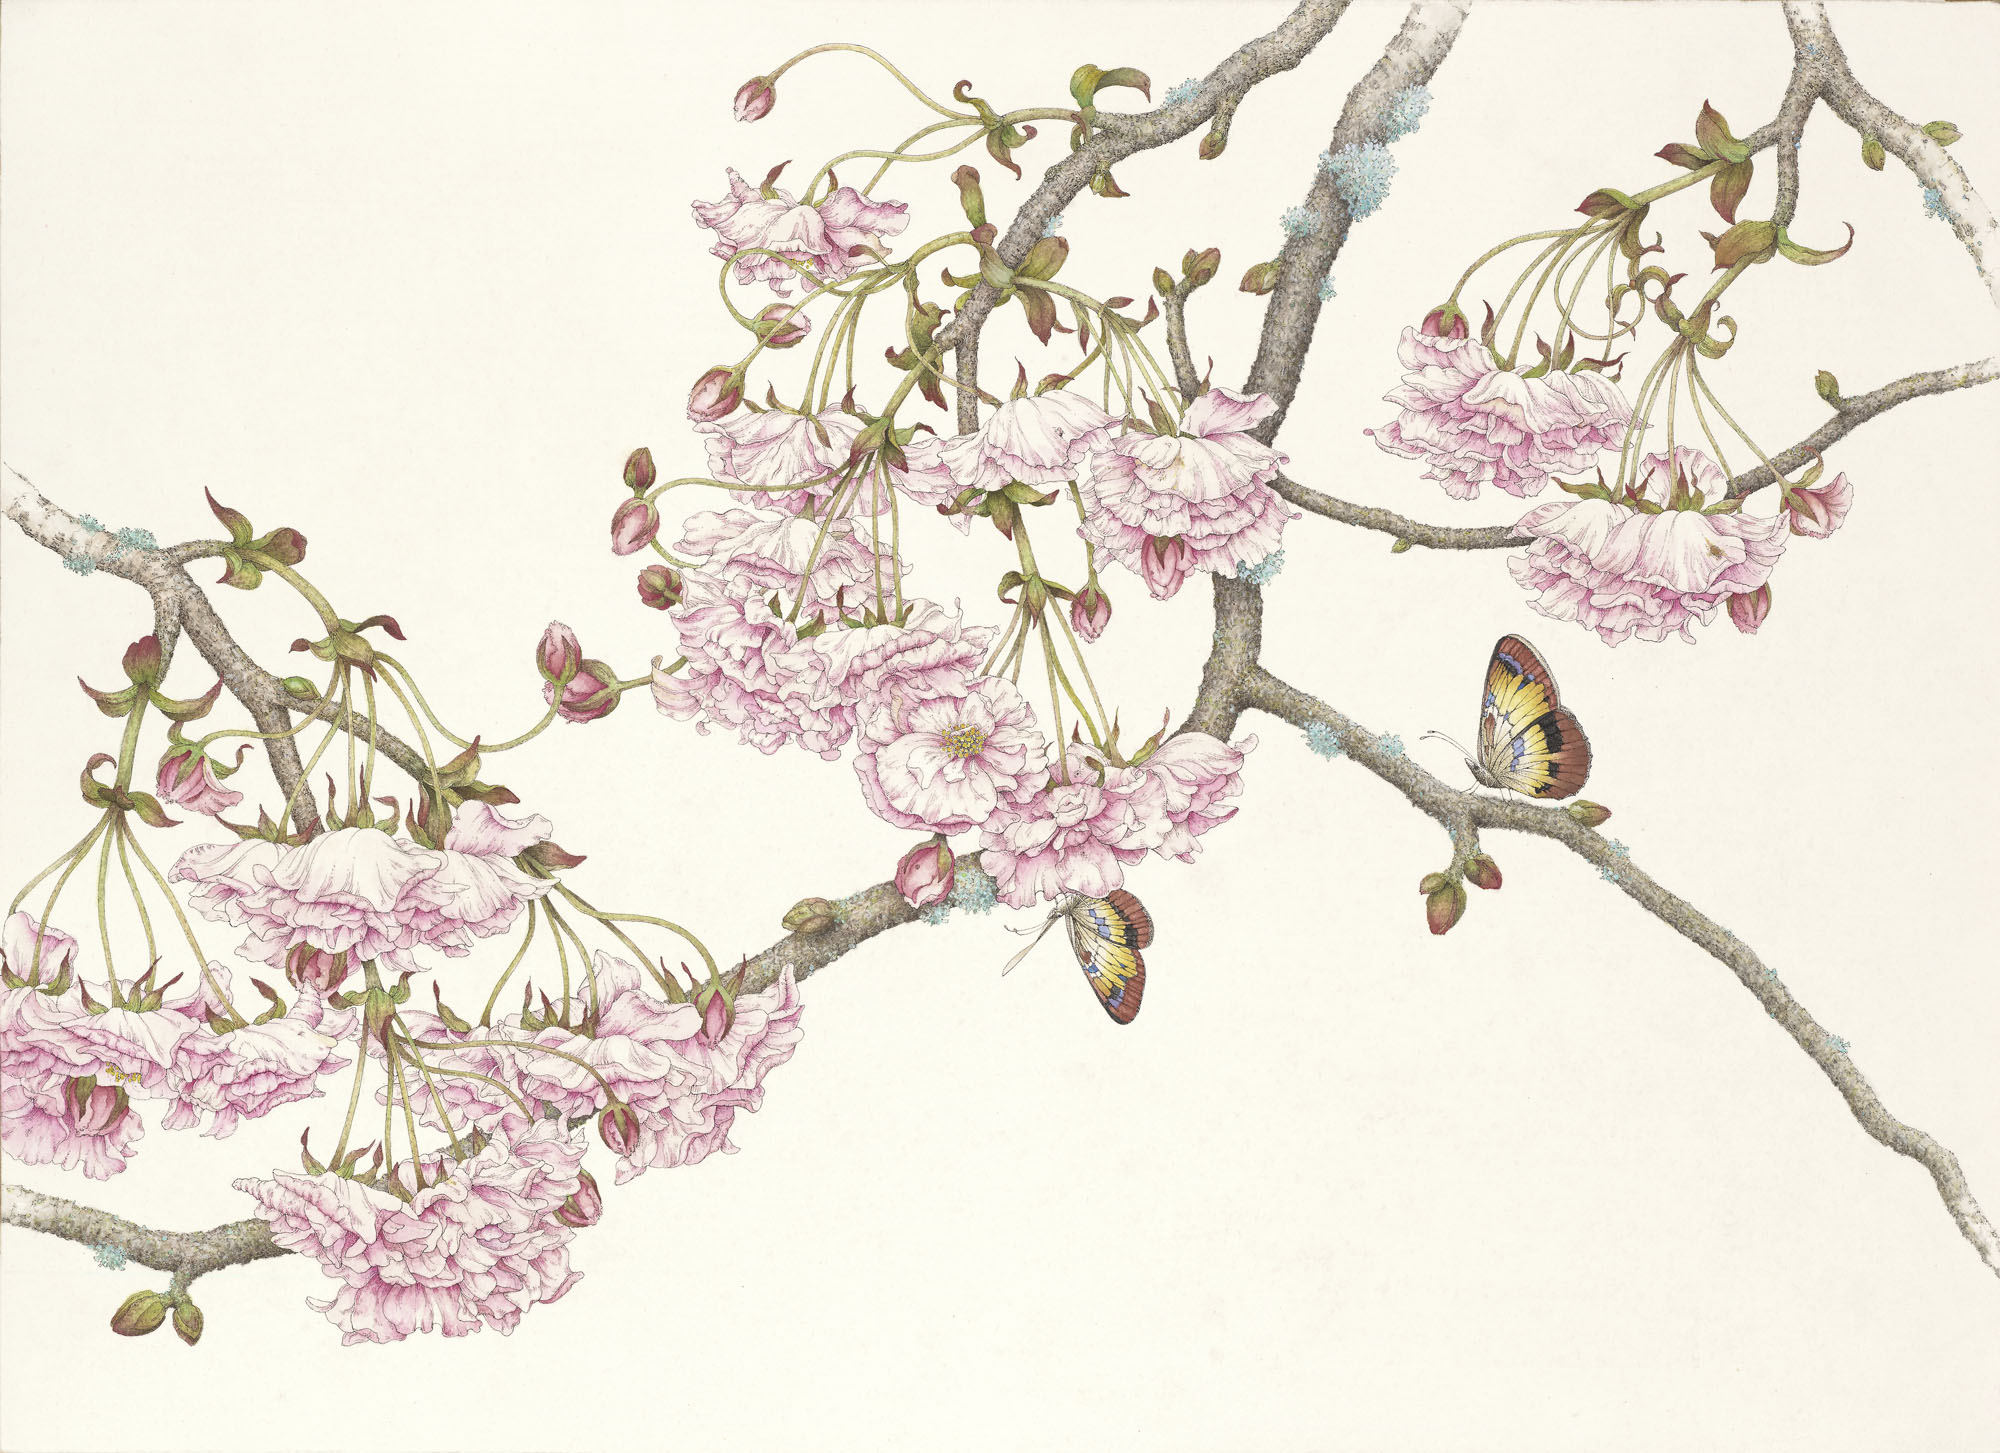 Drawn sakura blossom ink Japanese Watercolor Pen Blossoms Cherry